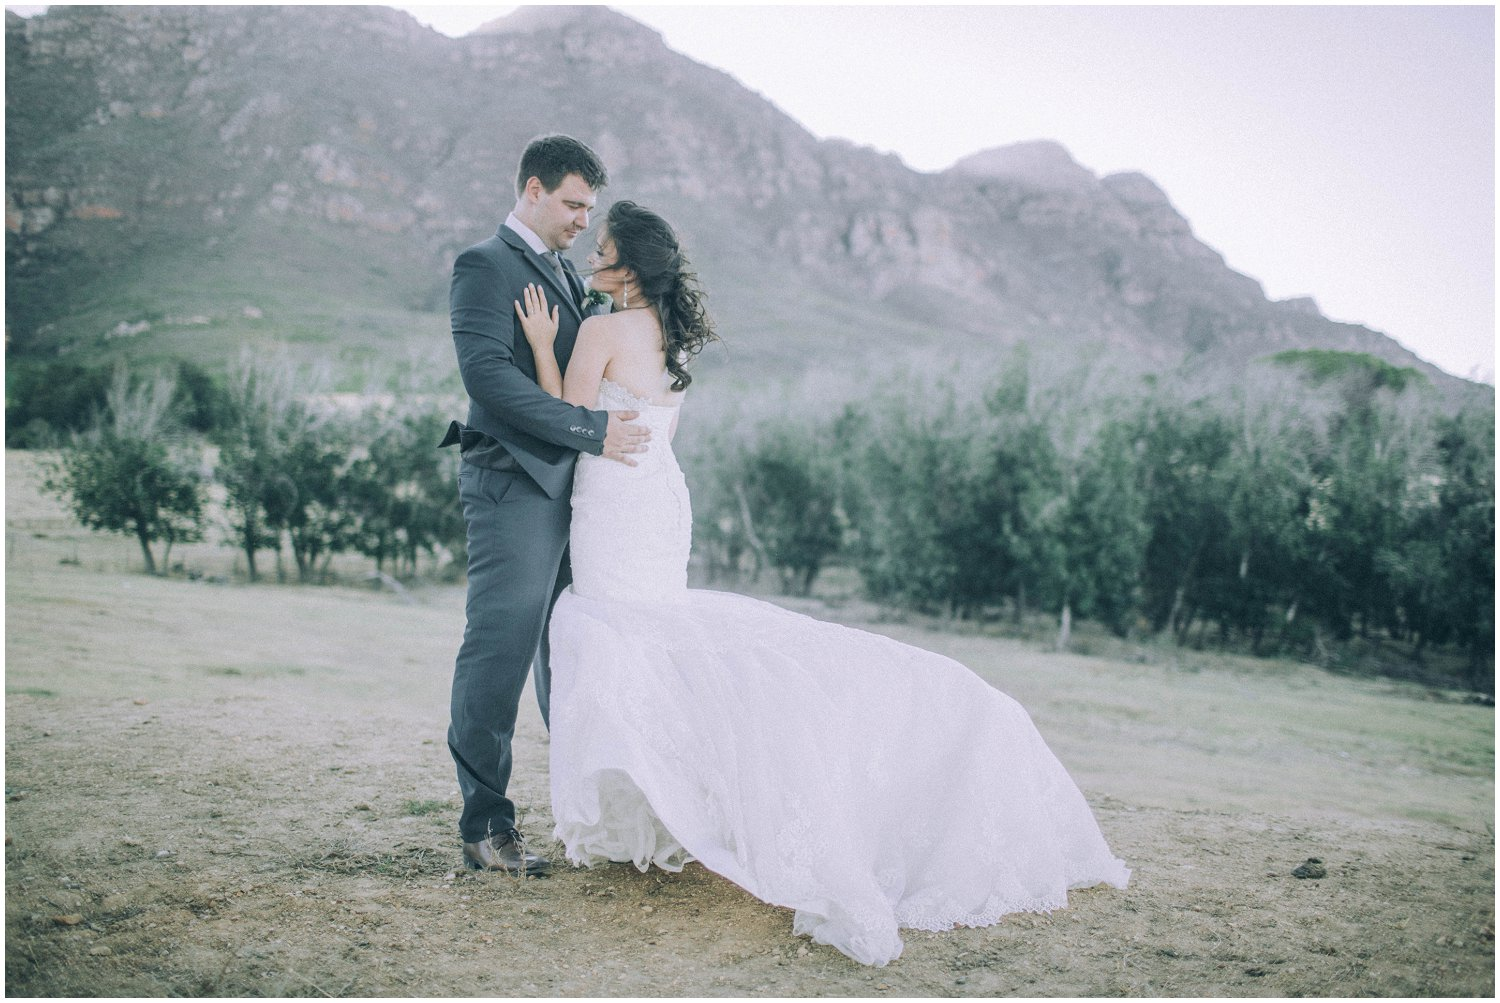 Top Artistic Creative Documentary Wedding Photographer Cape Town South Africa Rue Kruger_0367.jpg